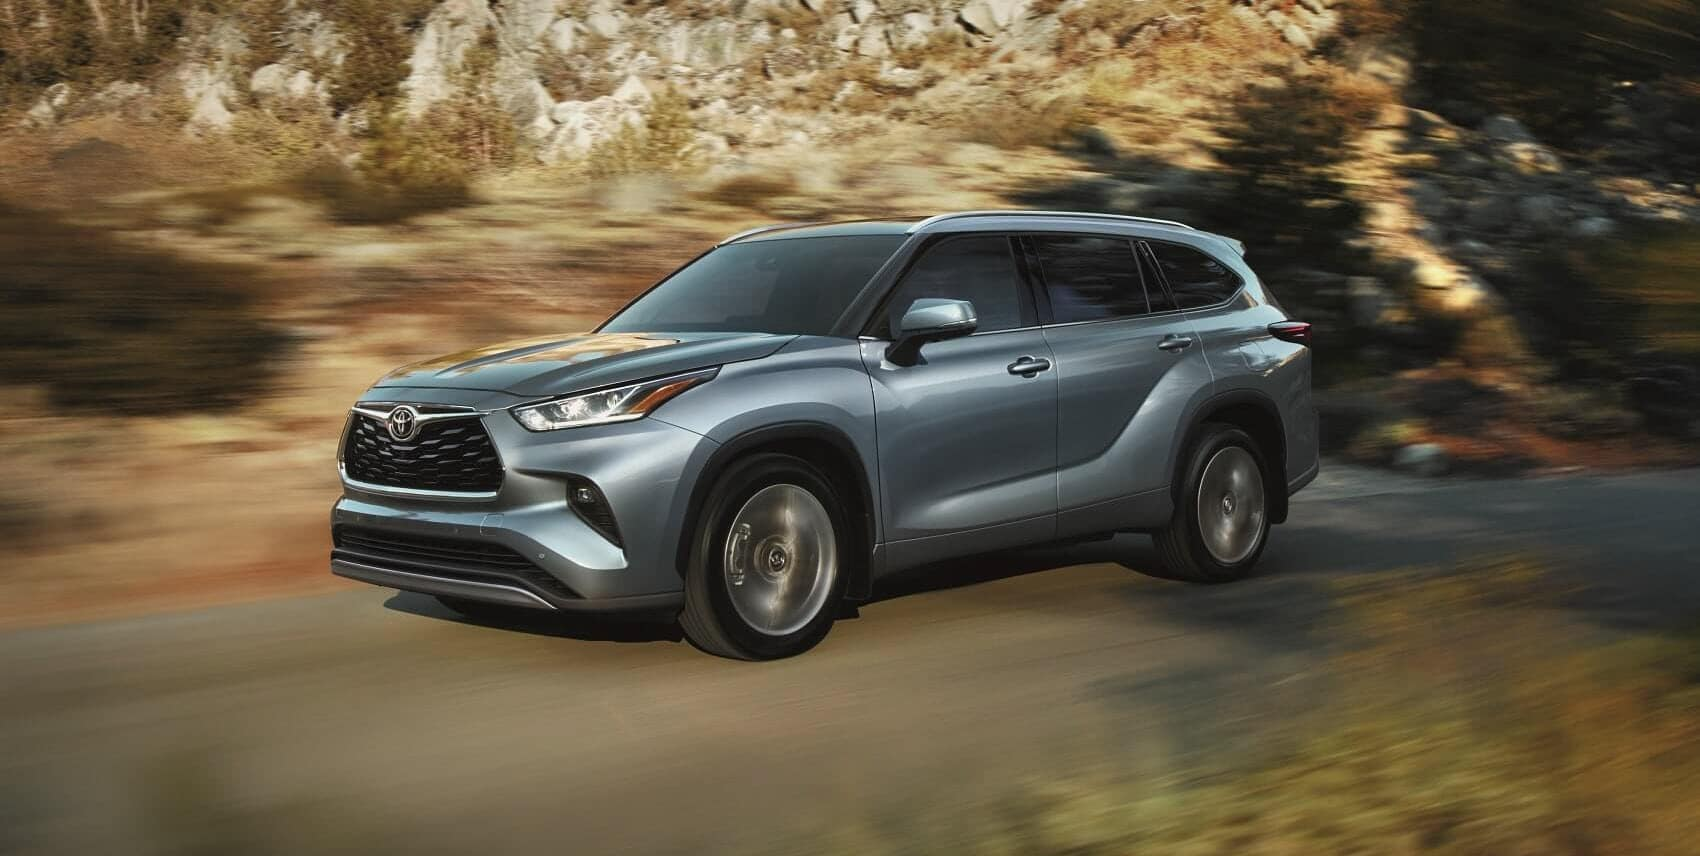 2020 Toyota Highlander Engine Power